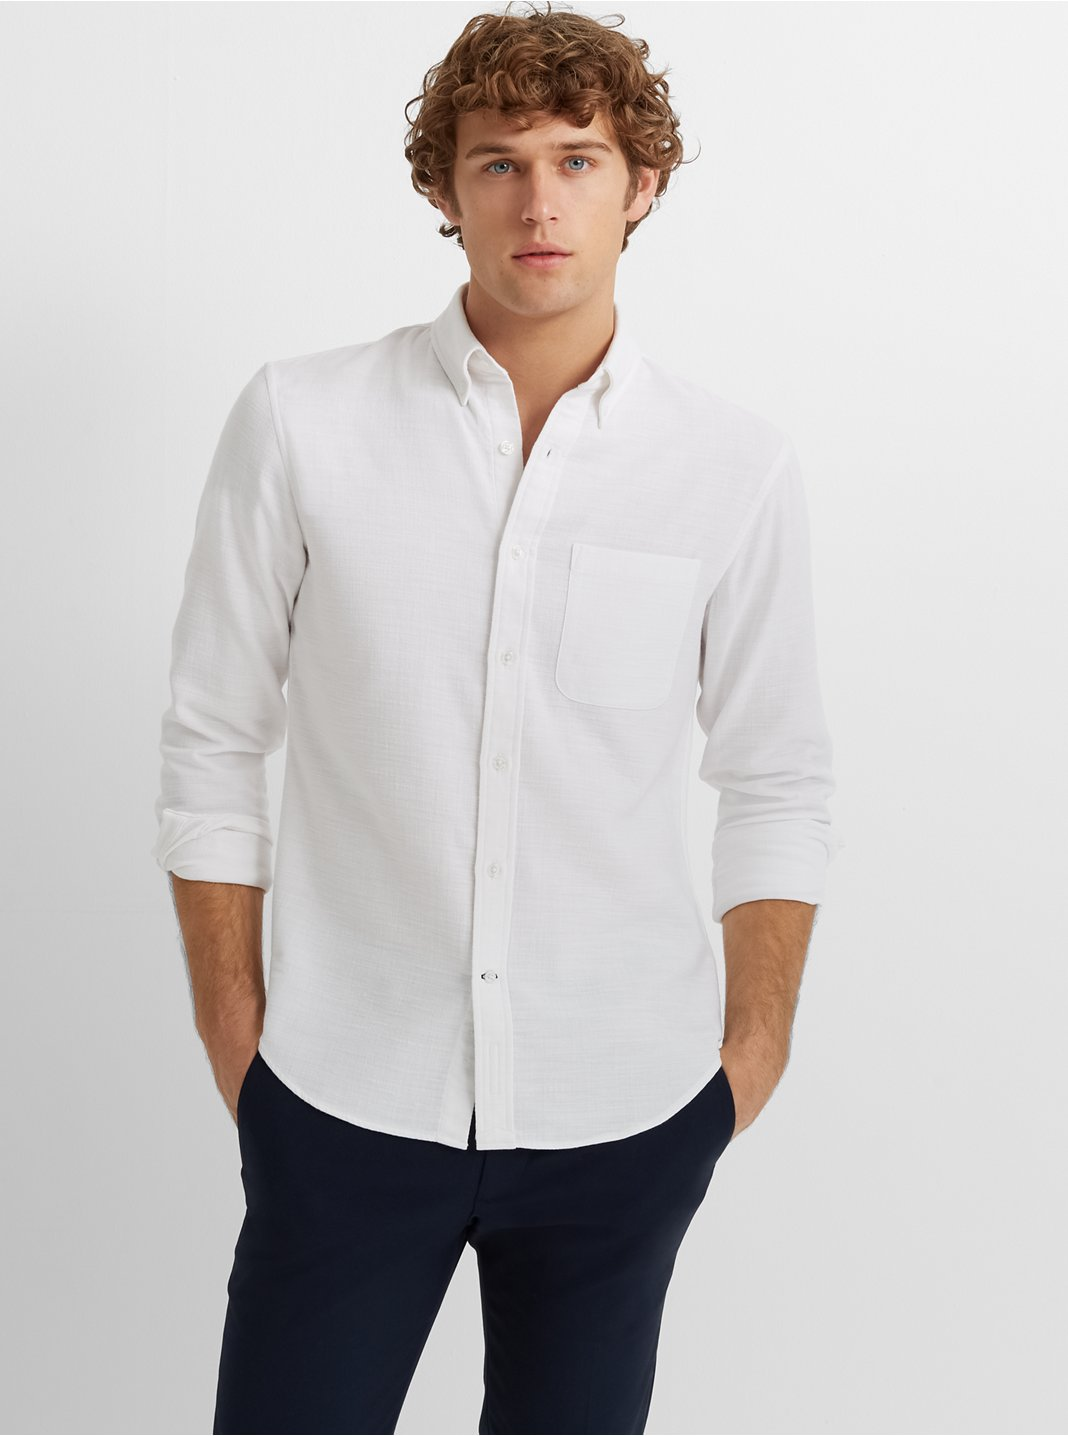 ClothingClub Mens ClothingClub Monaco Monaco Mens ClothingClub Monaco Mens ClothingClub Mens 0nXw8kOP